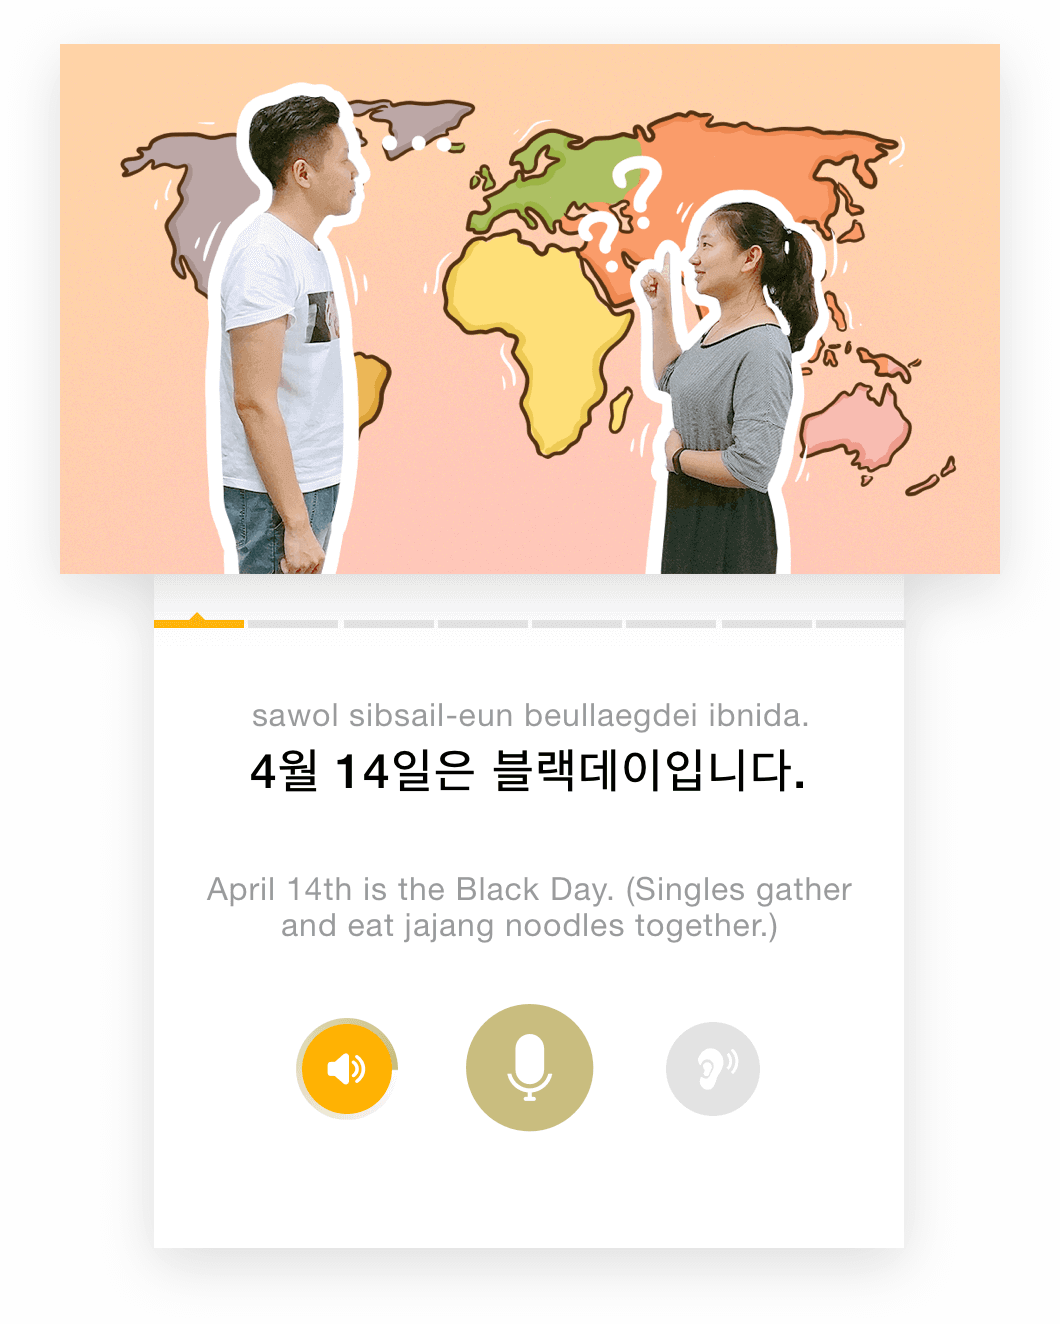 learn-korean-online-at-lingodeer.com